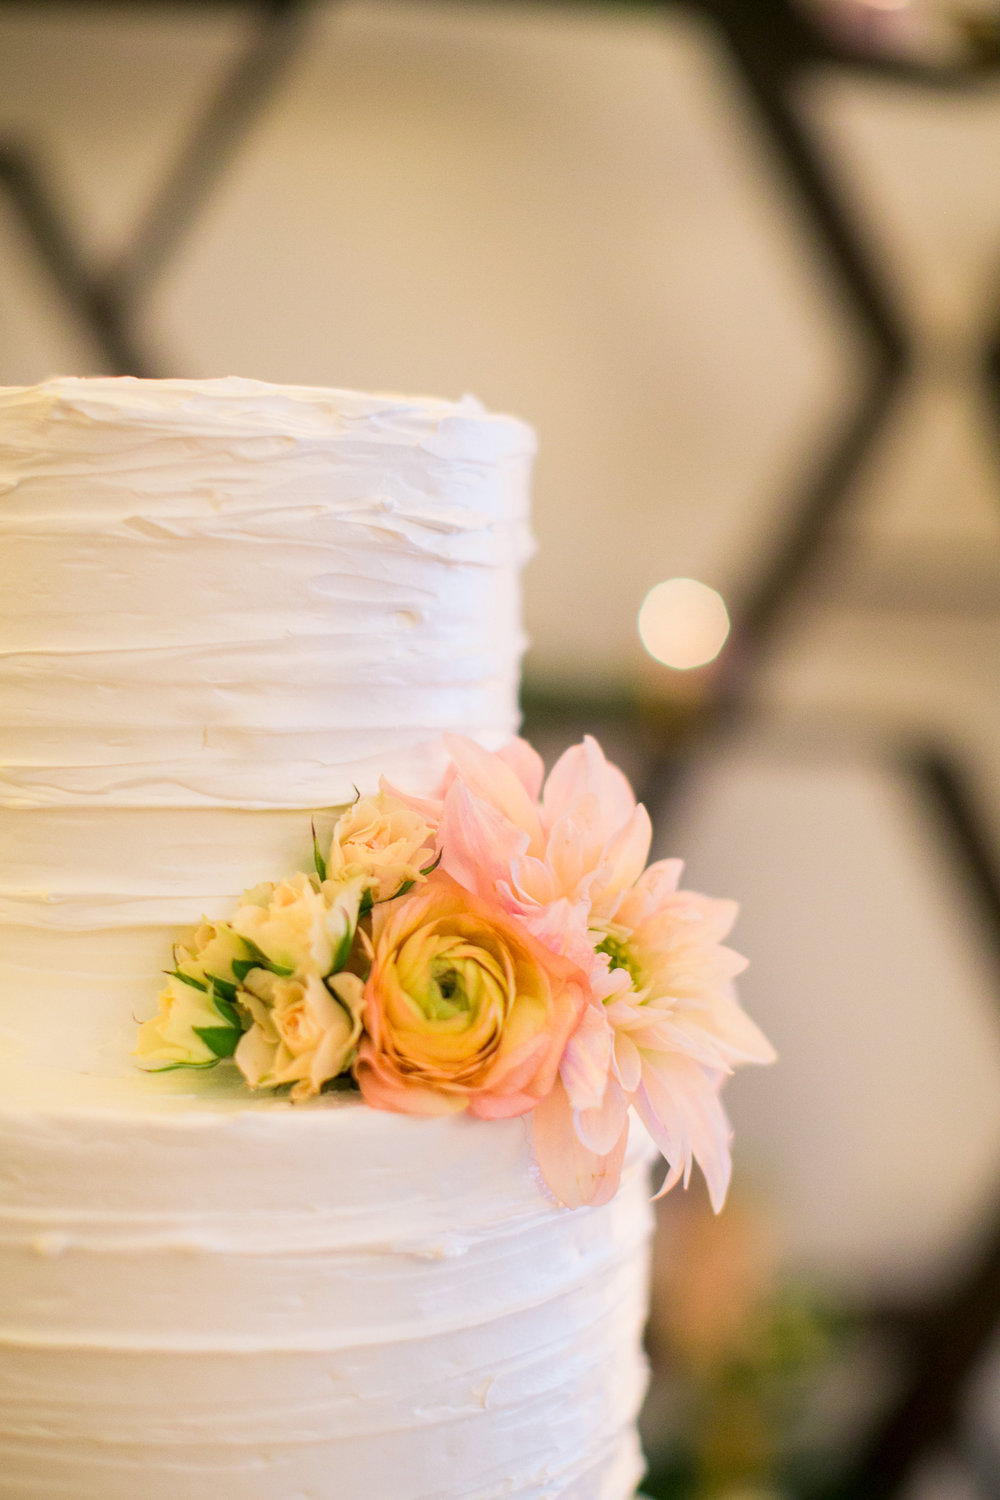 e18c4-elegant-country-charm-ranch-wedding-stunning-tiered-cake-with-soft-spray-of-flowers.jpg